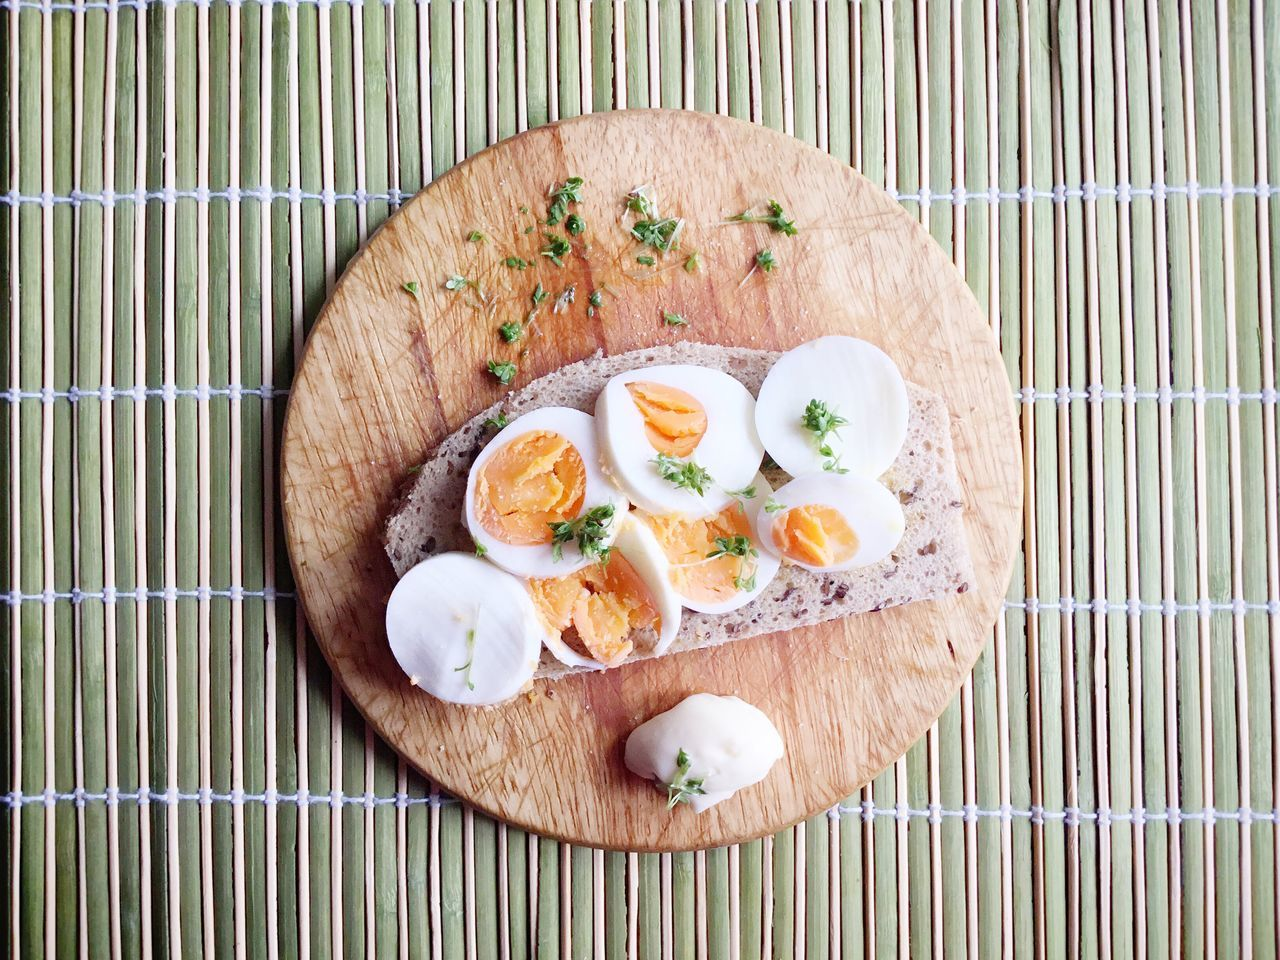 Egg Food Breakfast Food And Drink Meal Ready-to-eat Directly Above Healthy Eating No People Egg Yolk Close-up German Breakfast German Food Germany Egg Yolk Eggs For Breakfast Eggs... Food And Drink Frühstück Breakfast